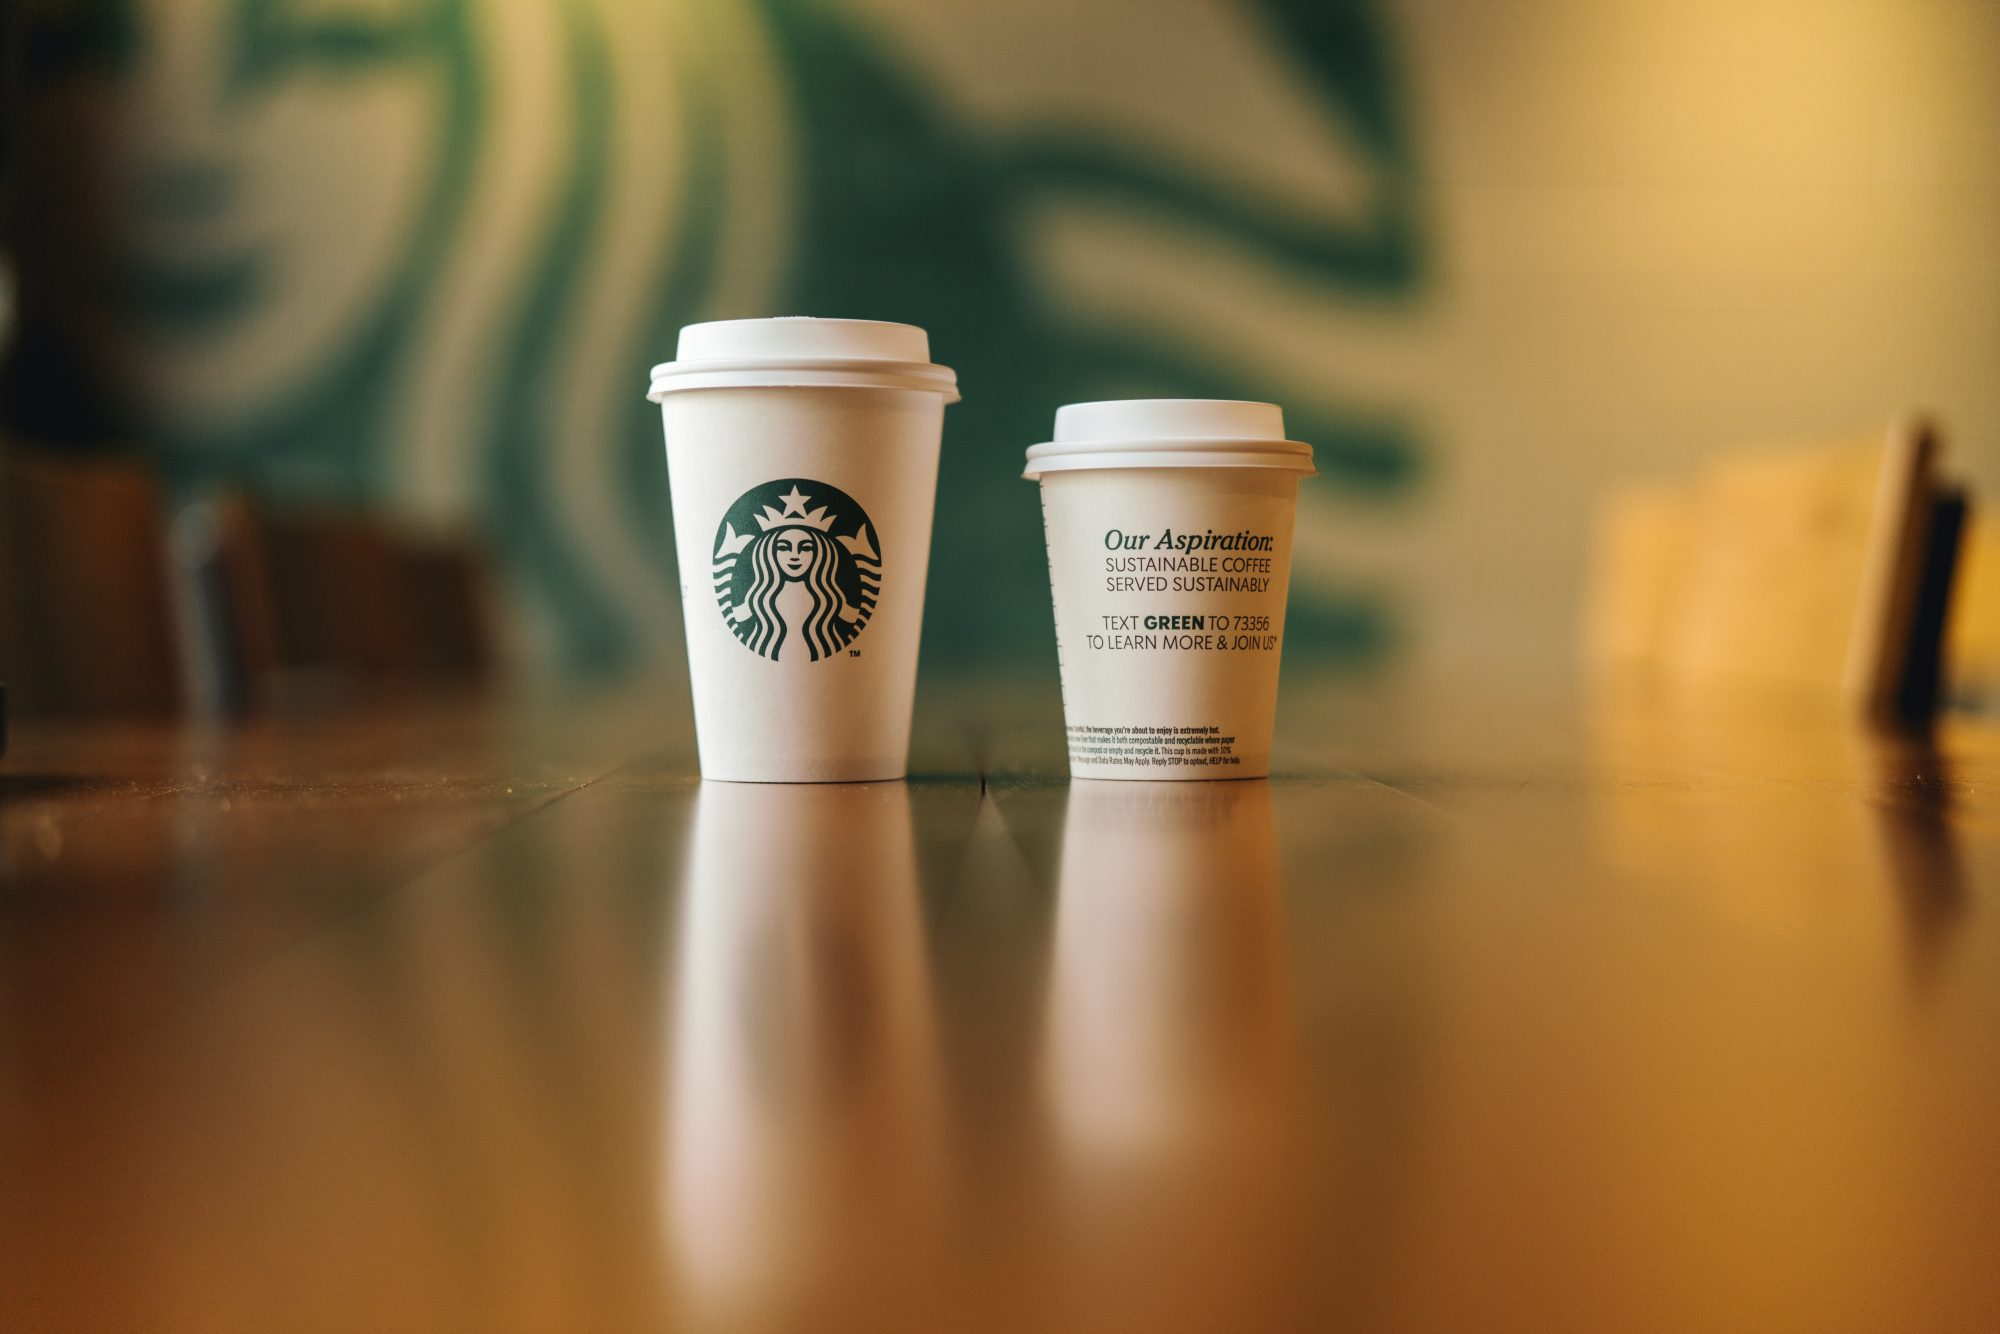 Starbucks Tests Compostable Cups